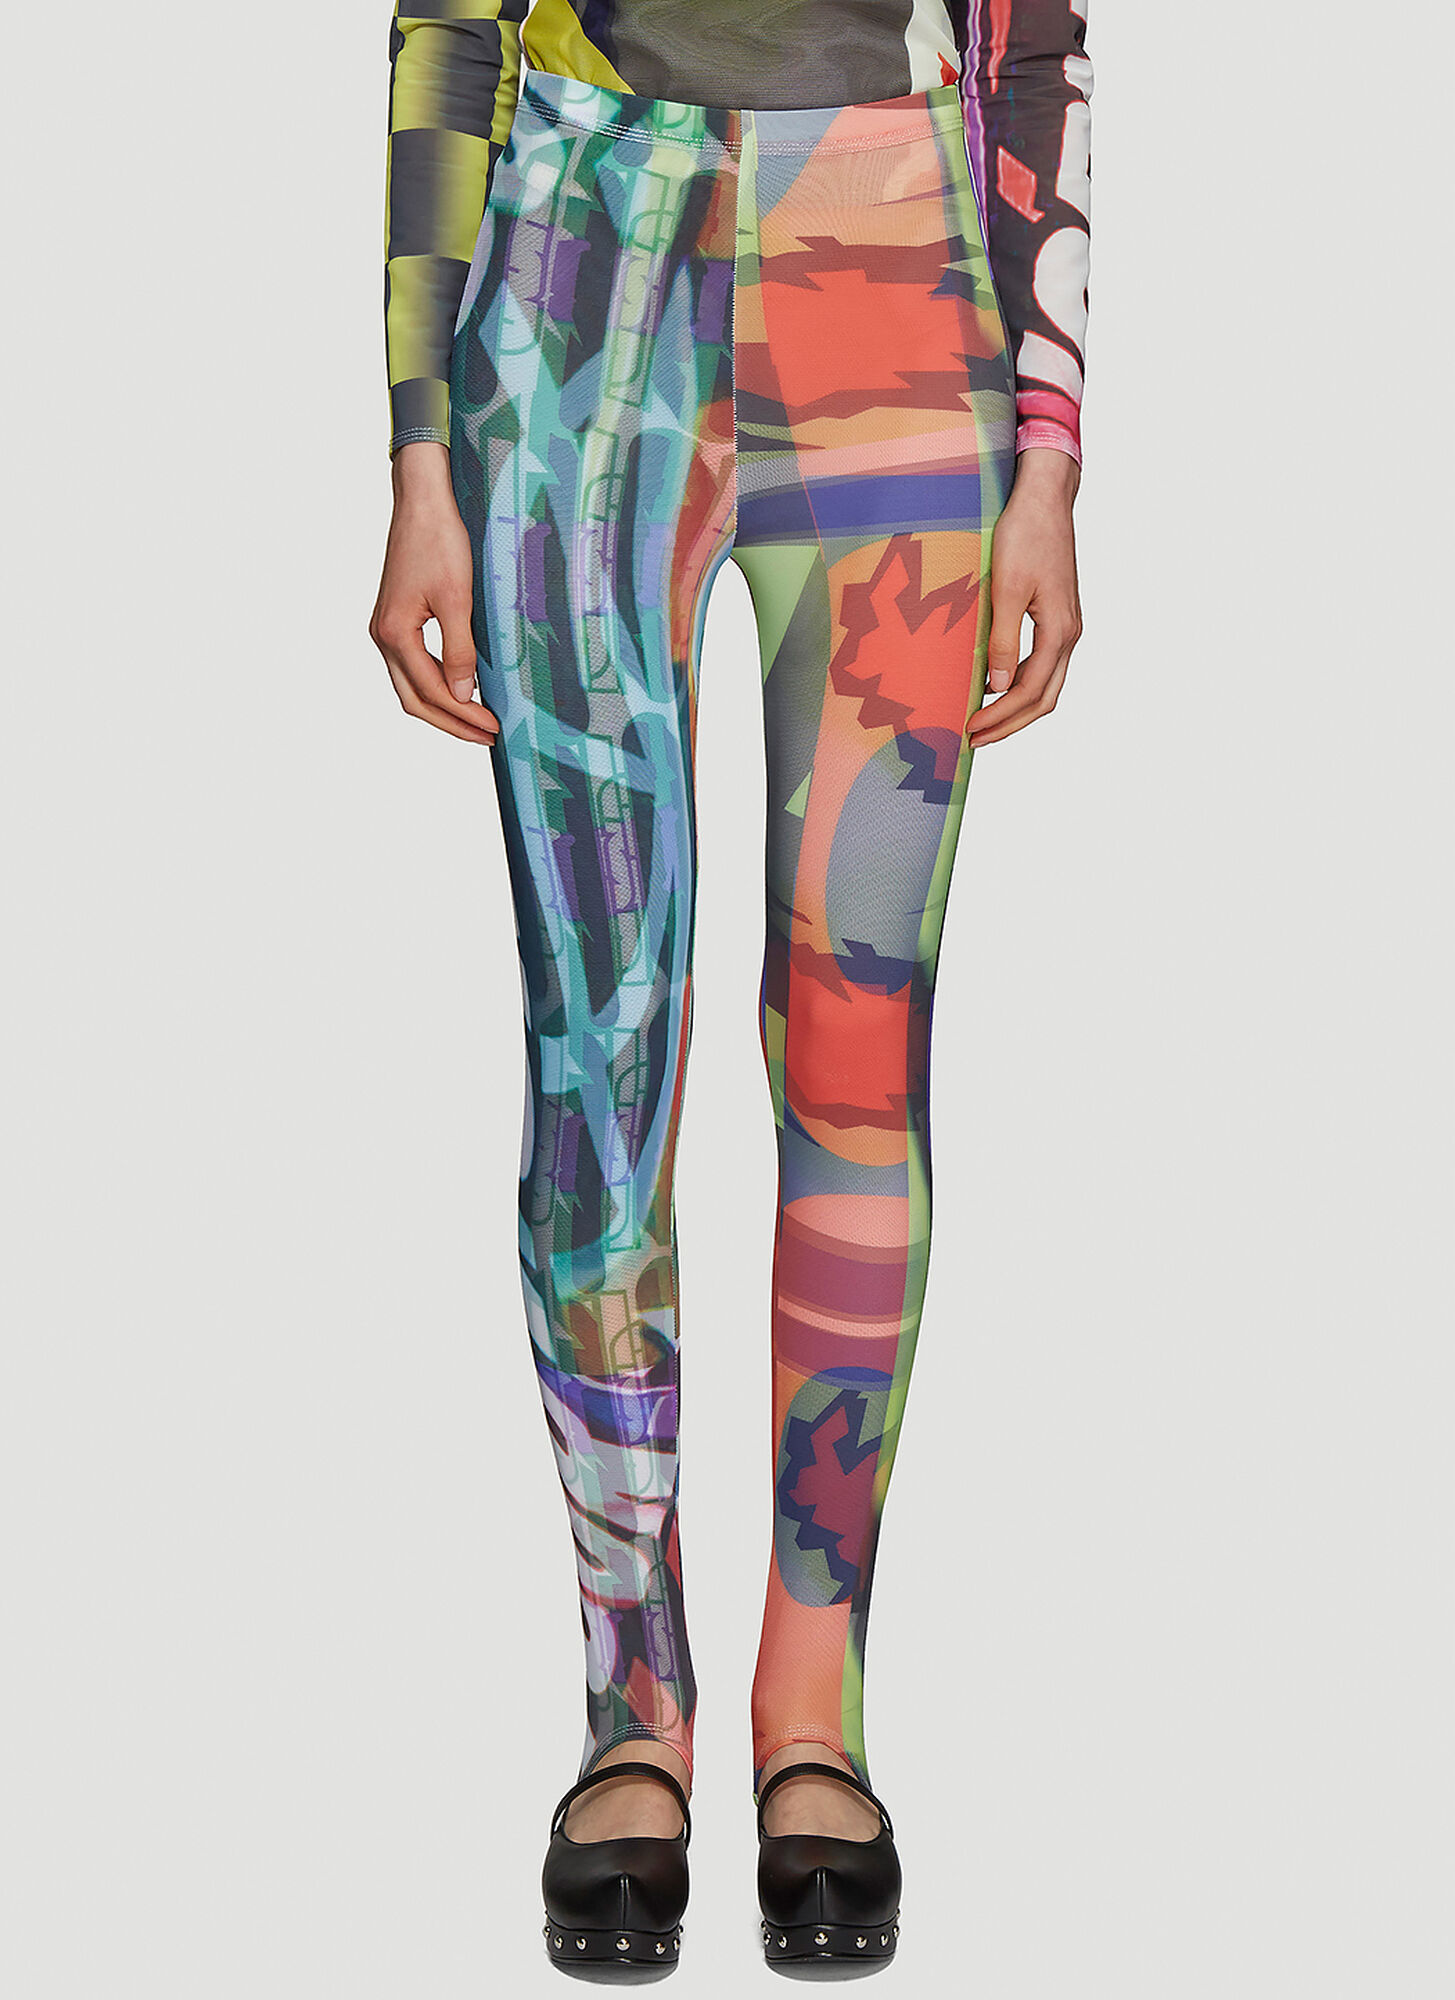 Chopova Lowena World Tour Stirrup Leggings in Multicolour